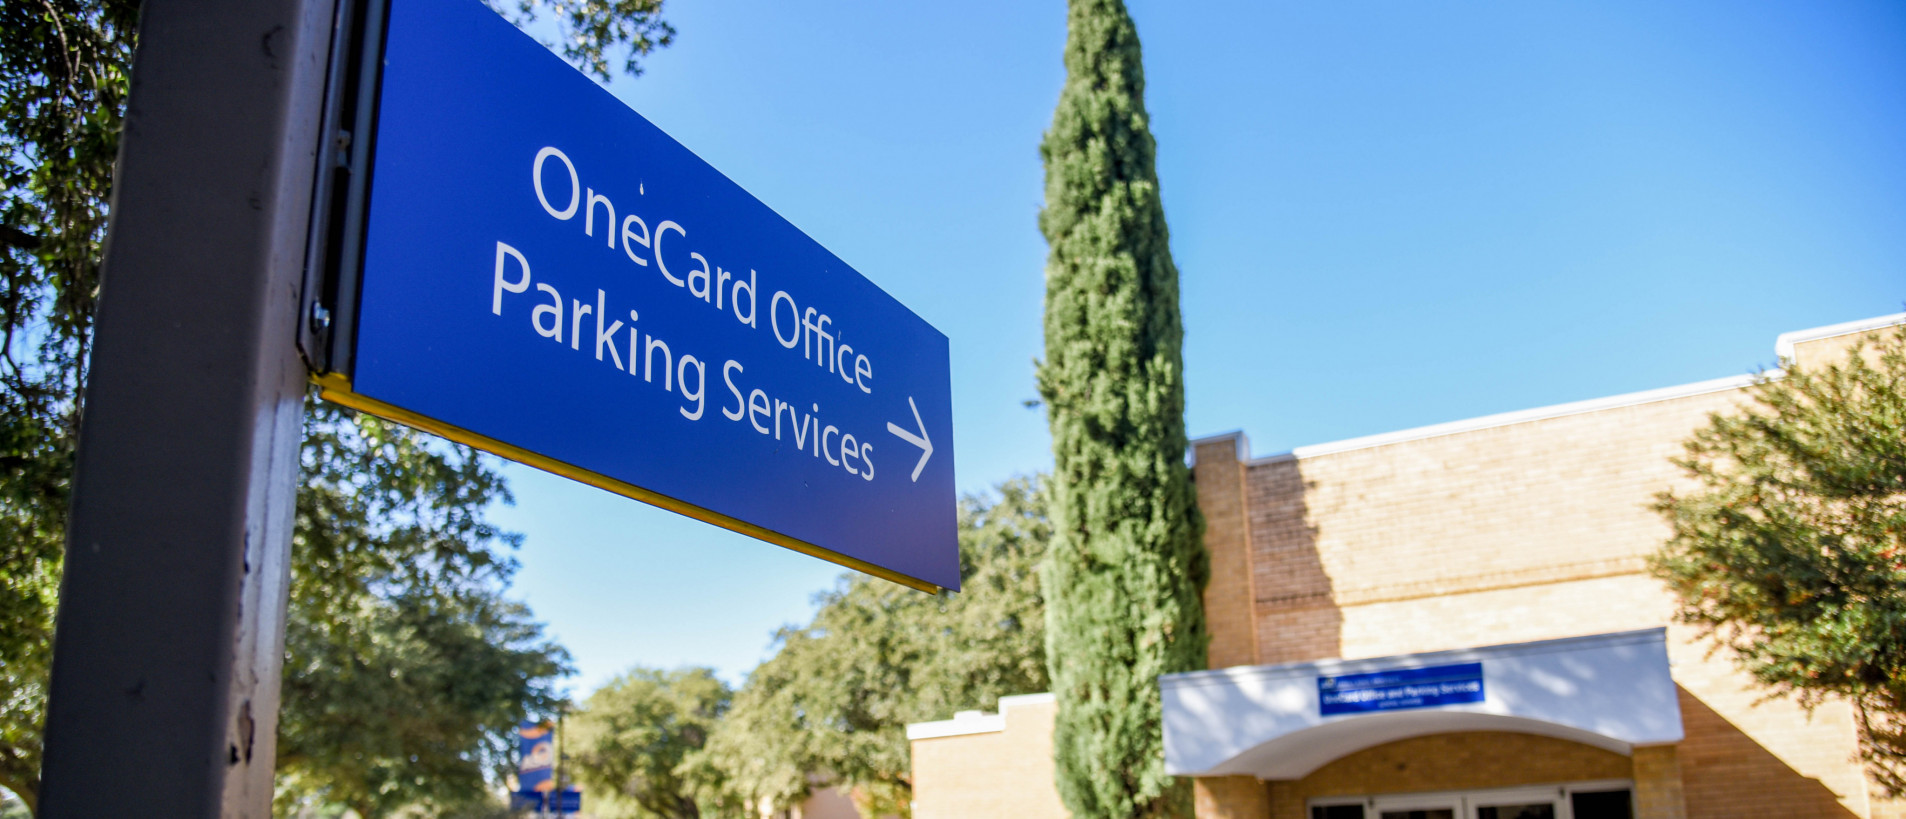 Parking Services-One Card